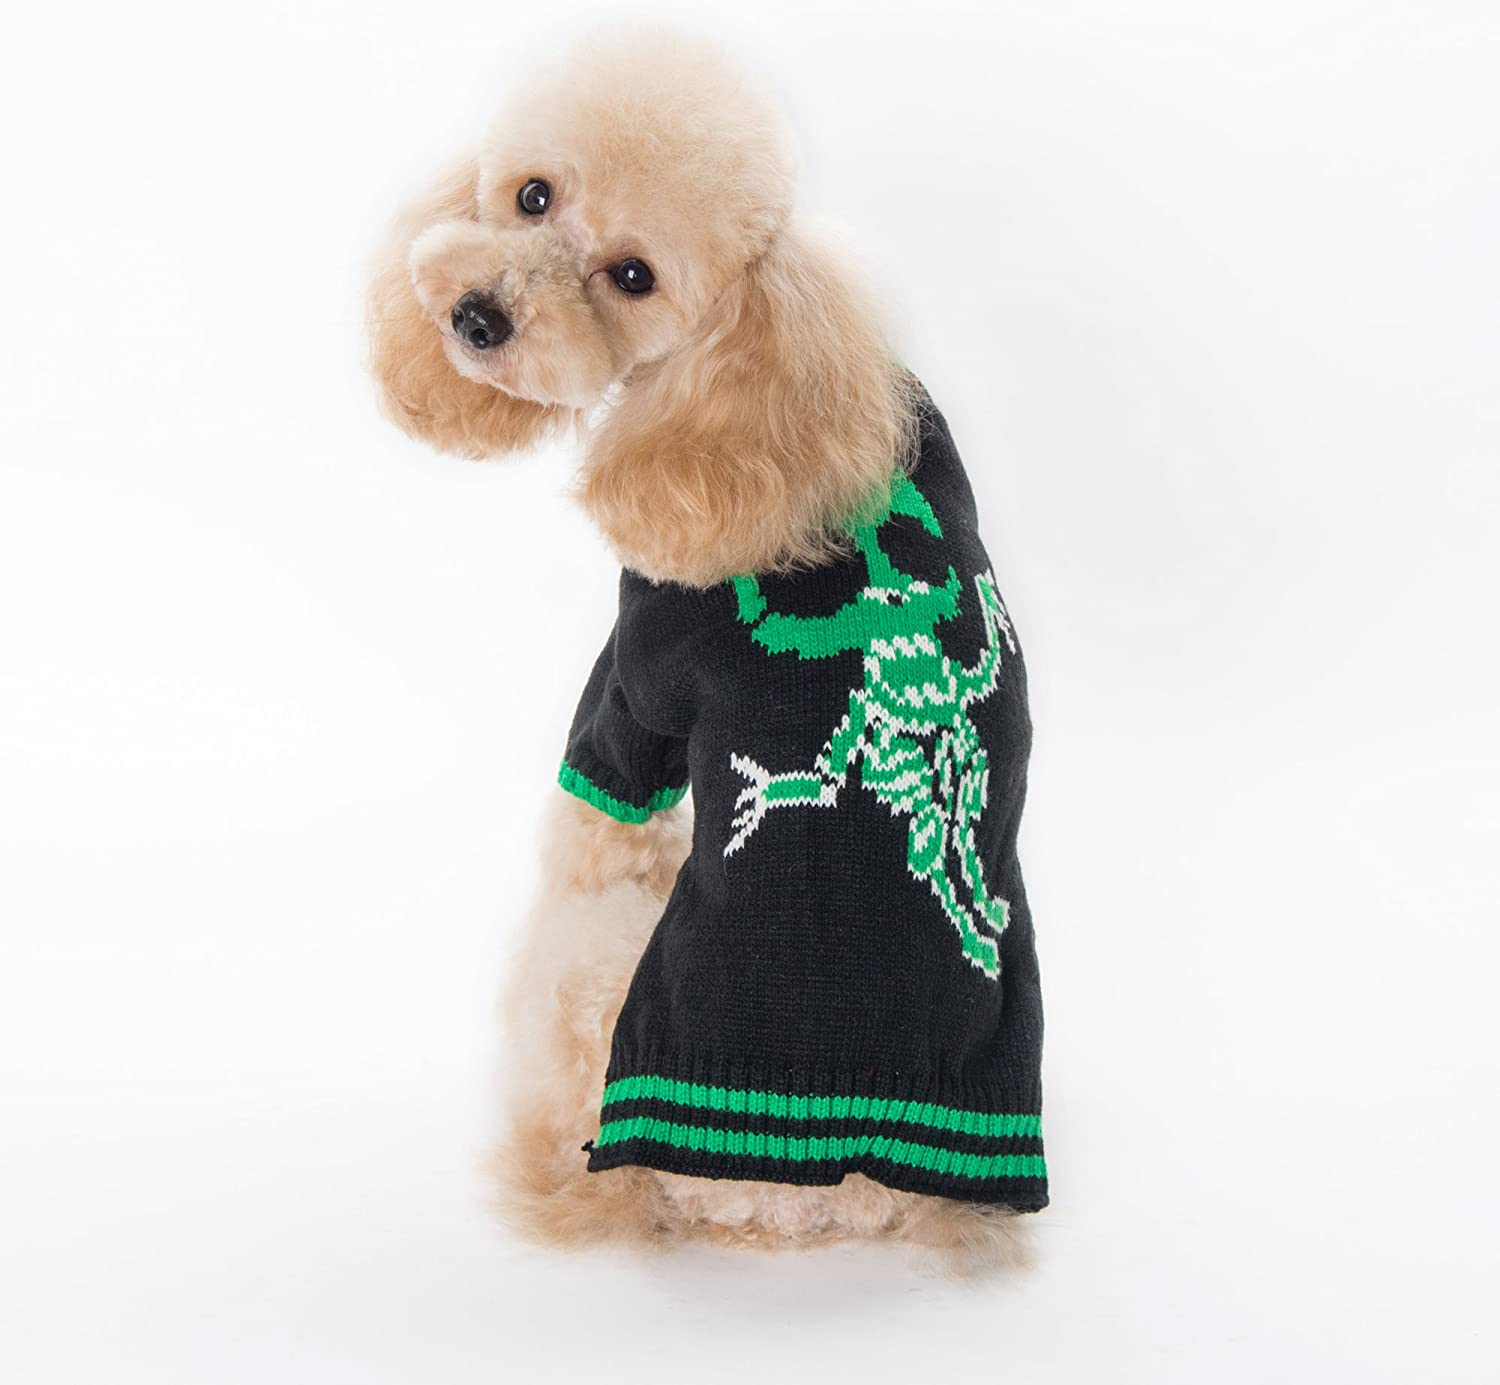 PETCARE Fashion Pet Dog Sweaters Cool Skull Puppy Clothes Warm Festival Knitwear Sweaters for Small Medium Dogs Cats